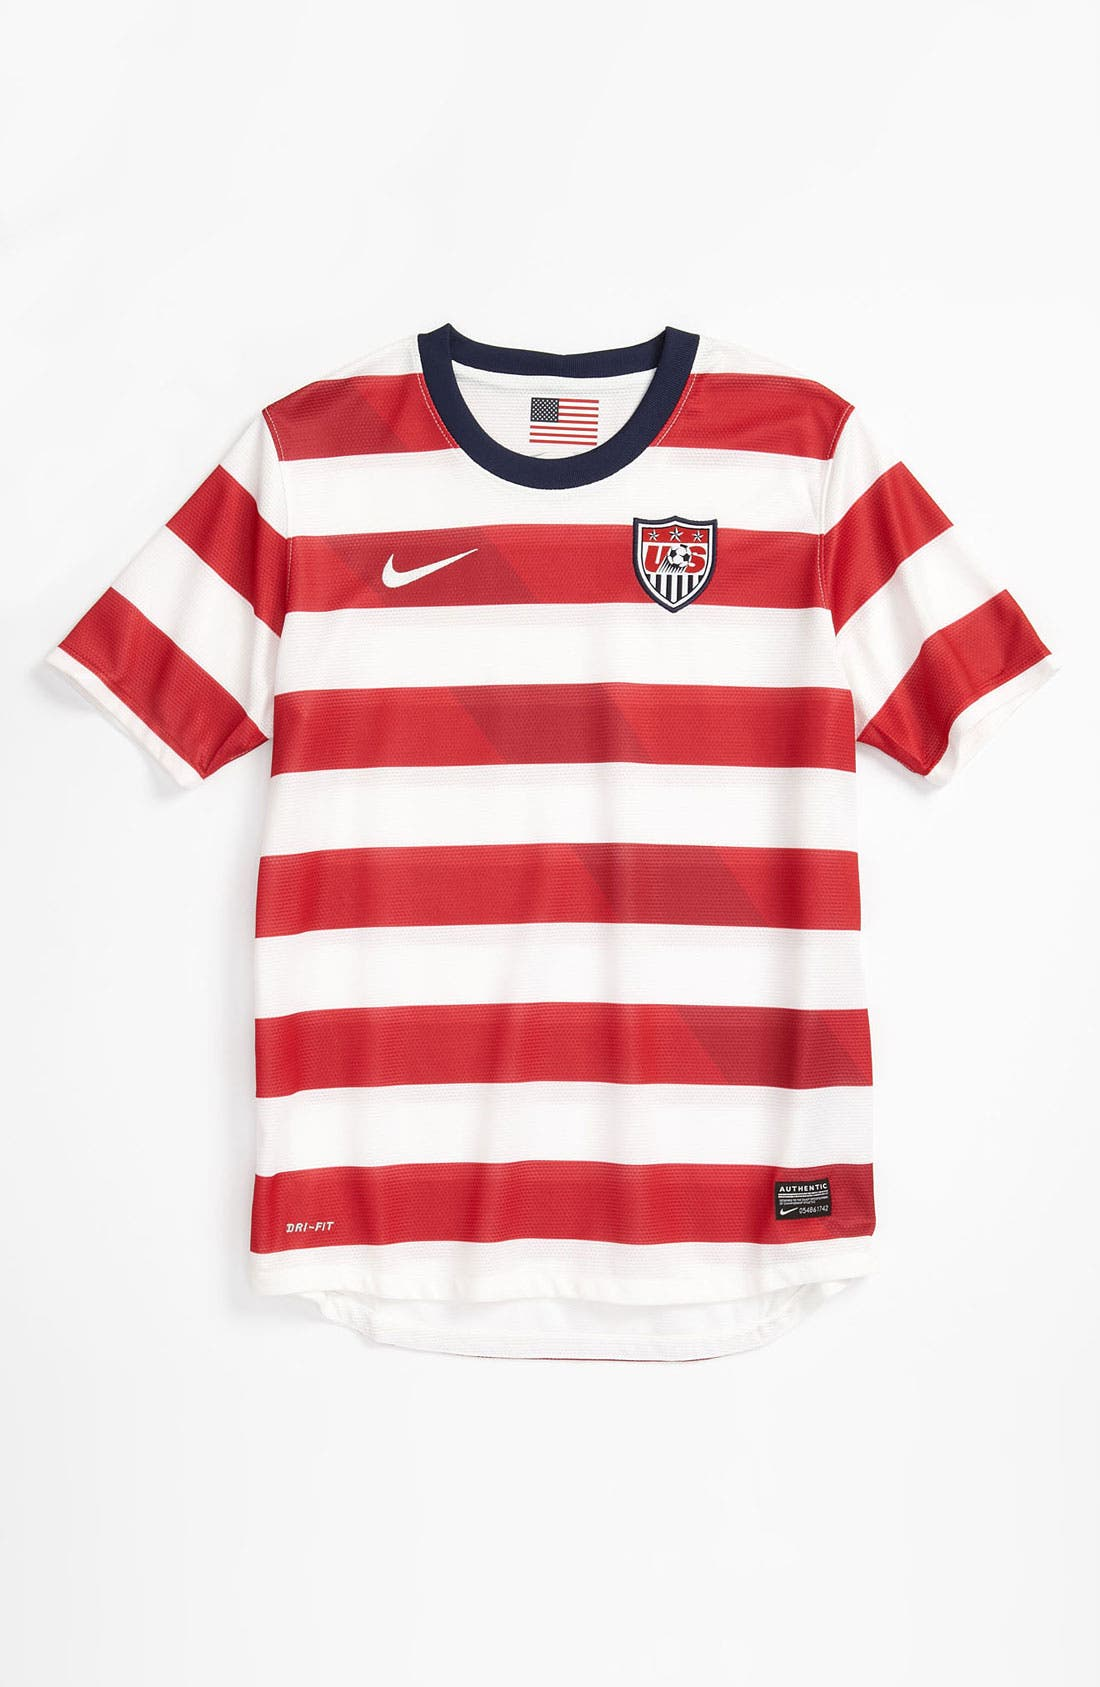 Alternate Image 1 Selected - Nike 'USA Home' Dri-FIT Jersey (Big Boys)